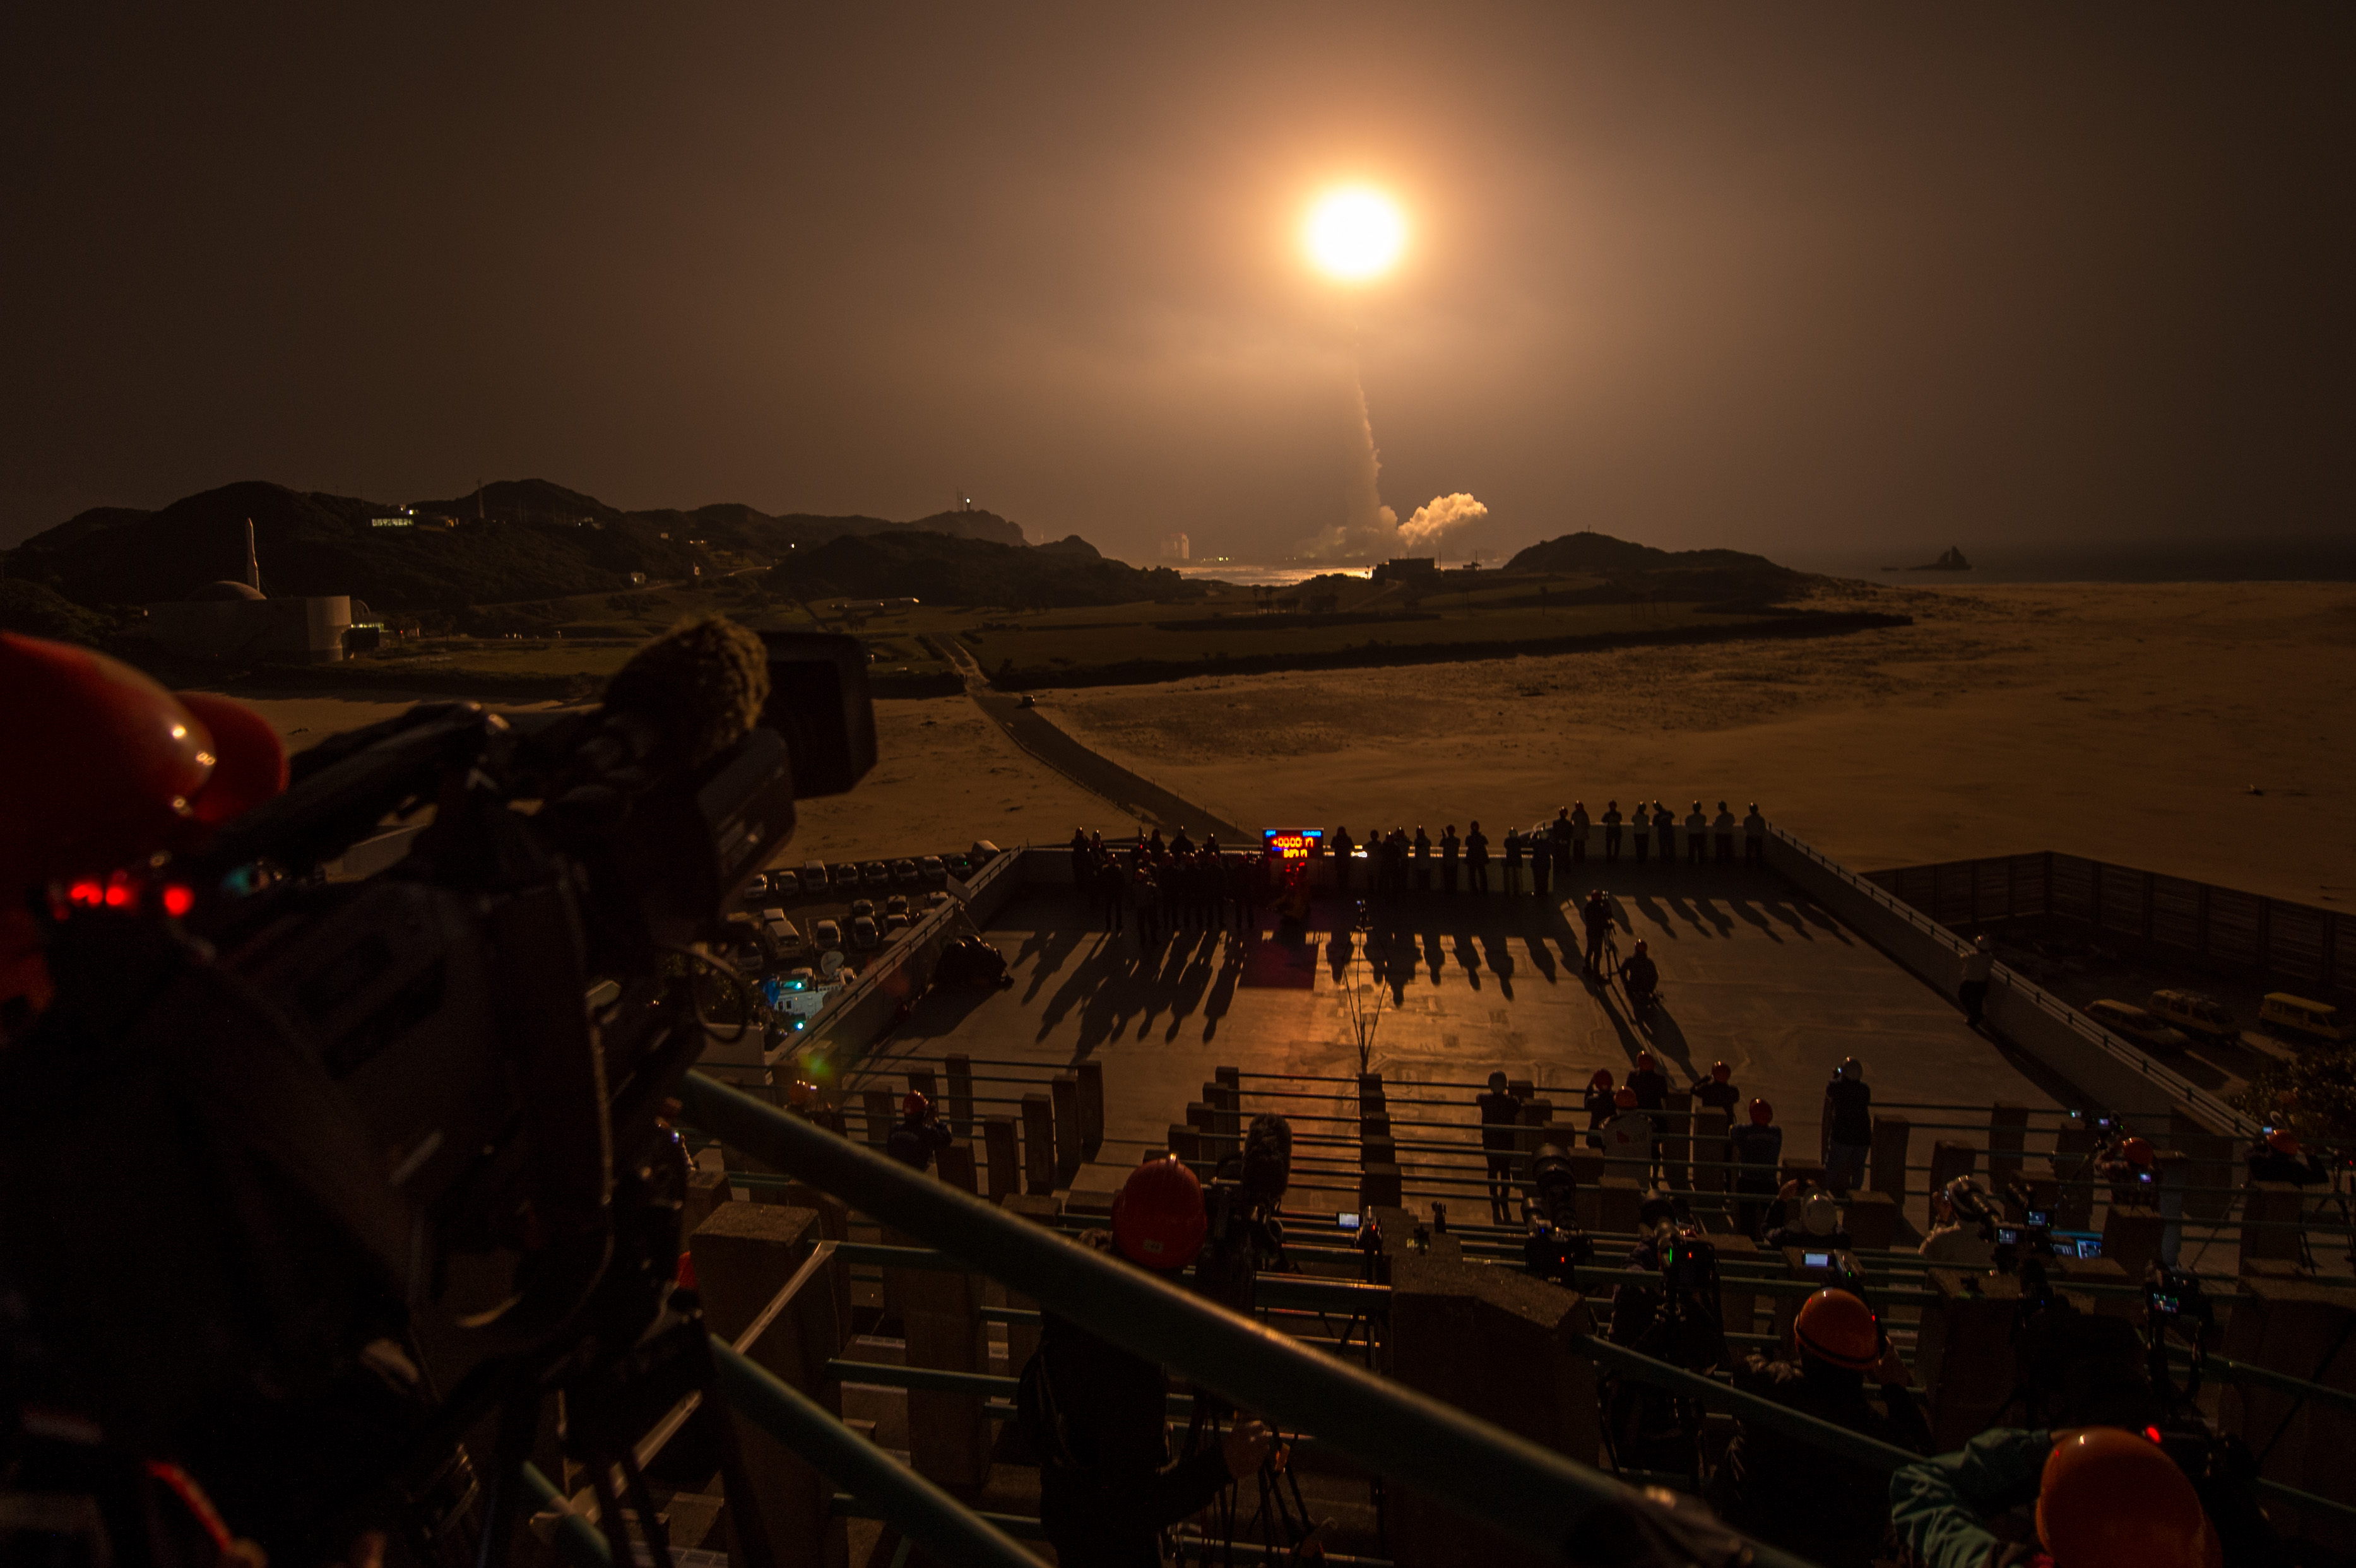 GPM Launches from Tanegashima Space Center